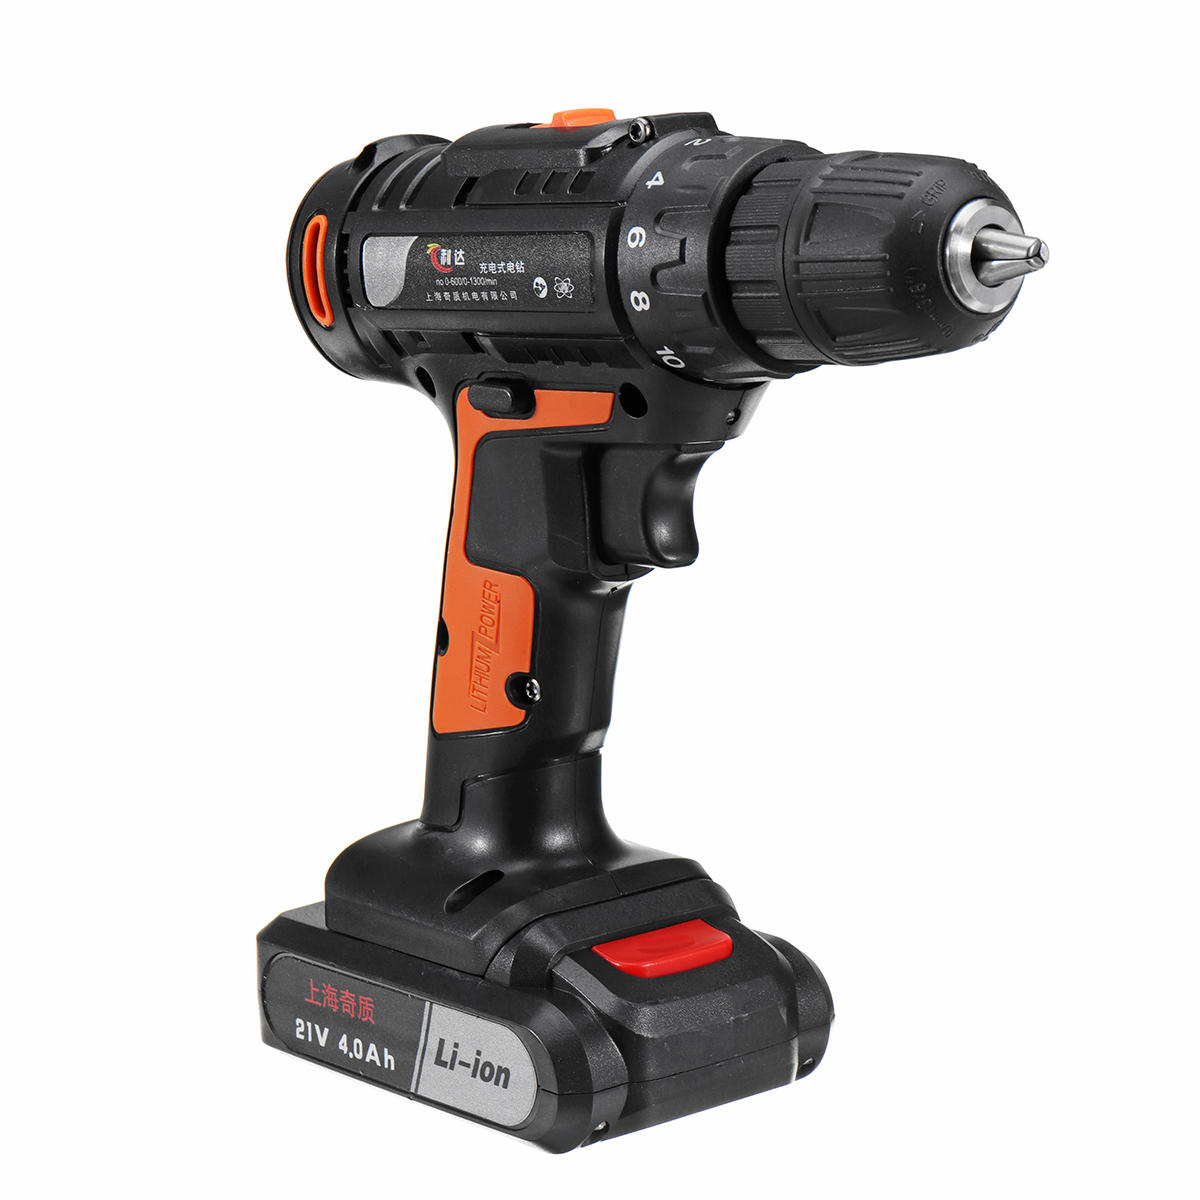 21V 4000mAh Cordless Rechargeable Power Drill Driver Electric Screwdriver with 1 or 2 Li-ion Battery